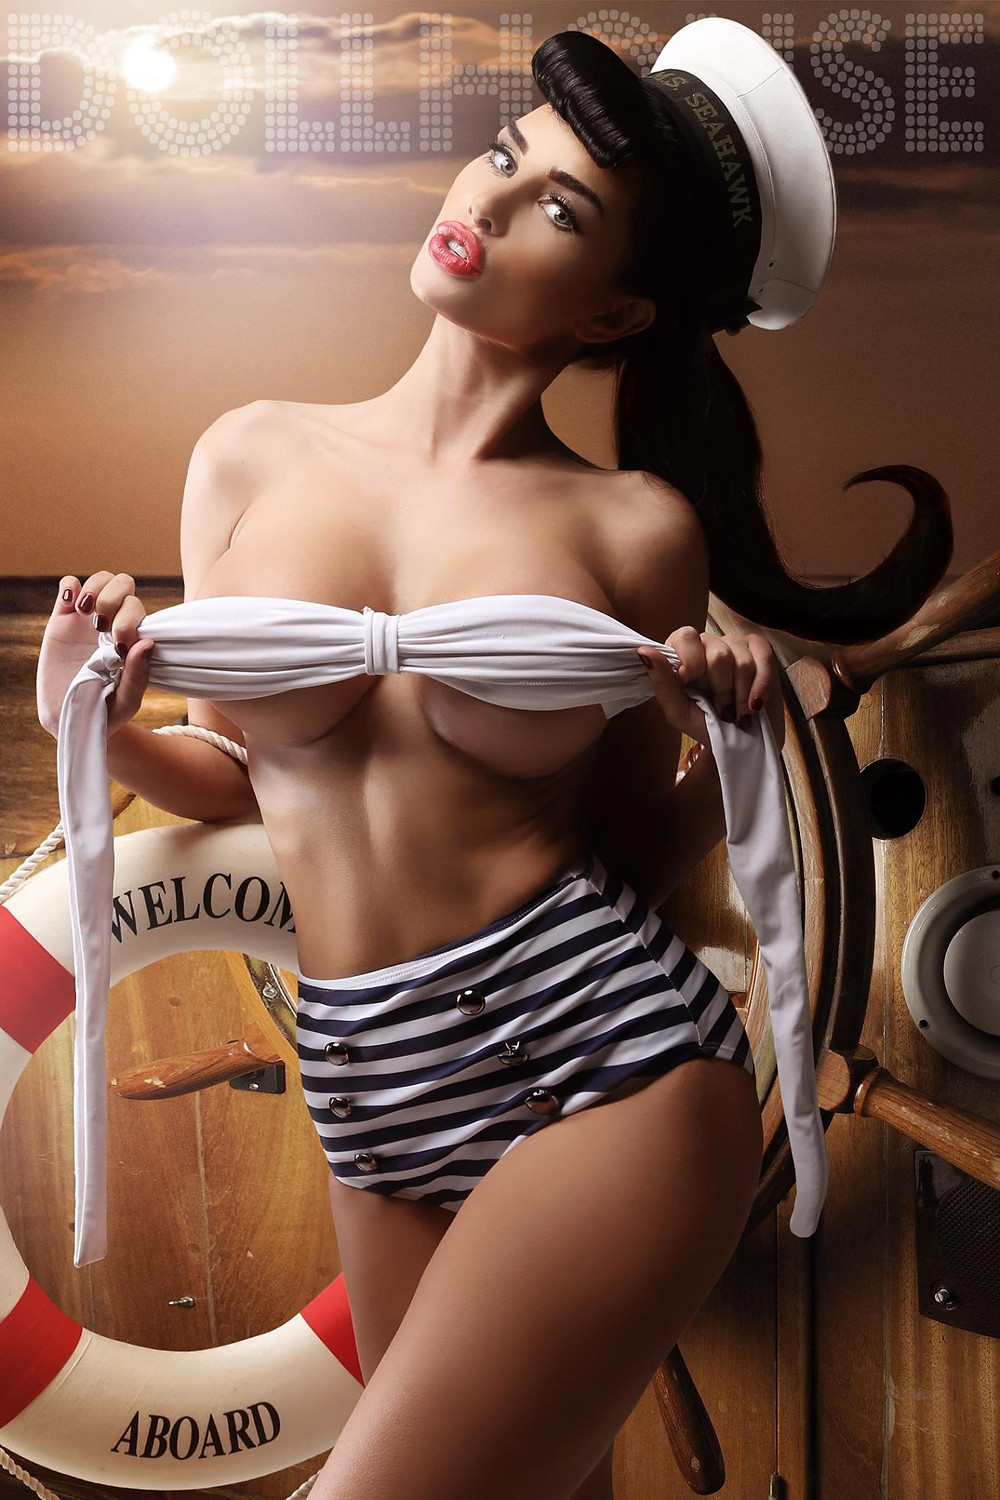 Ann Denise Model Nautical Pin up Photography by DollHouse Photography